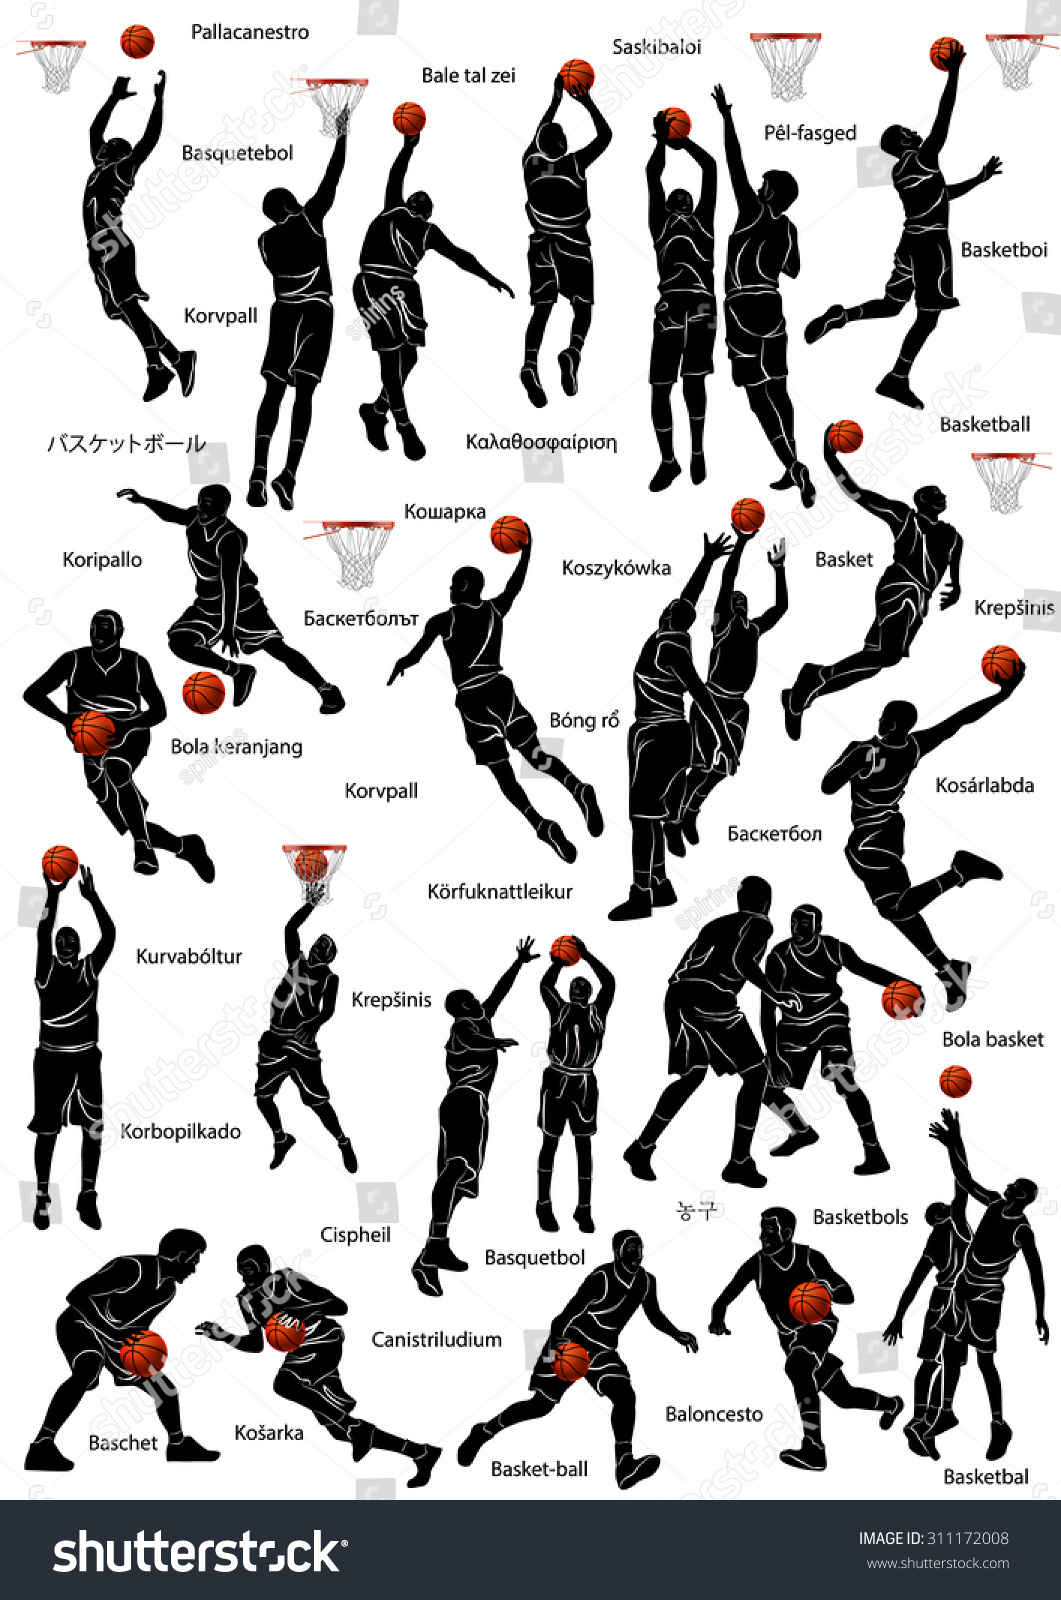 Silhouette Of Basketball Players In Action With Name The Game Written Different Languages